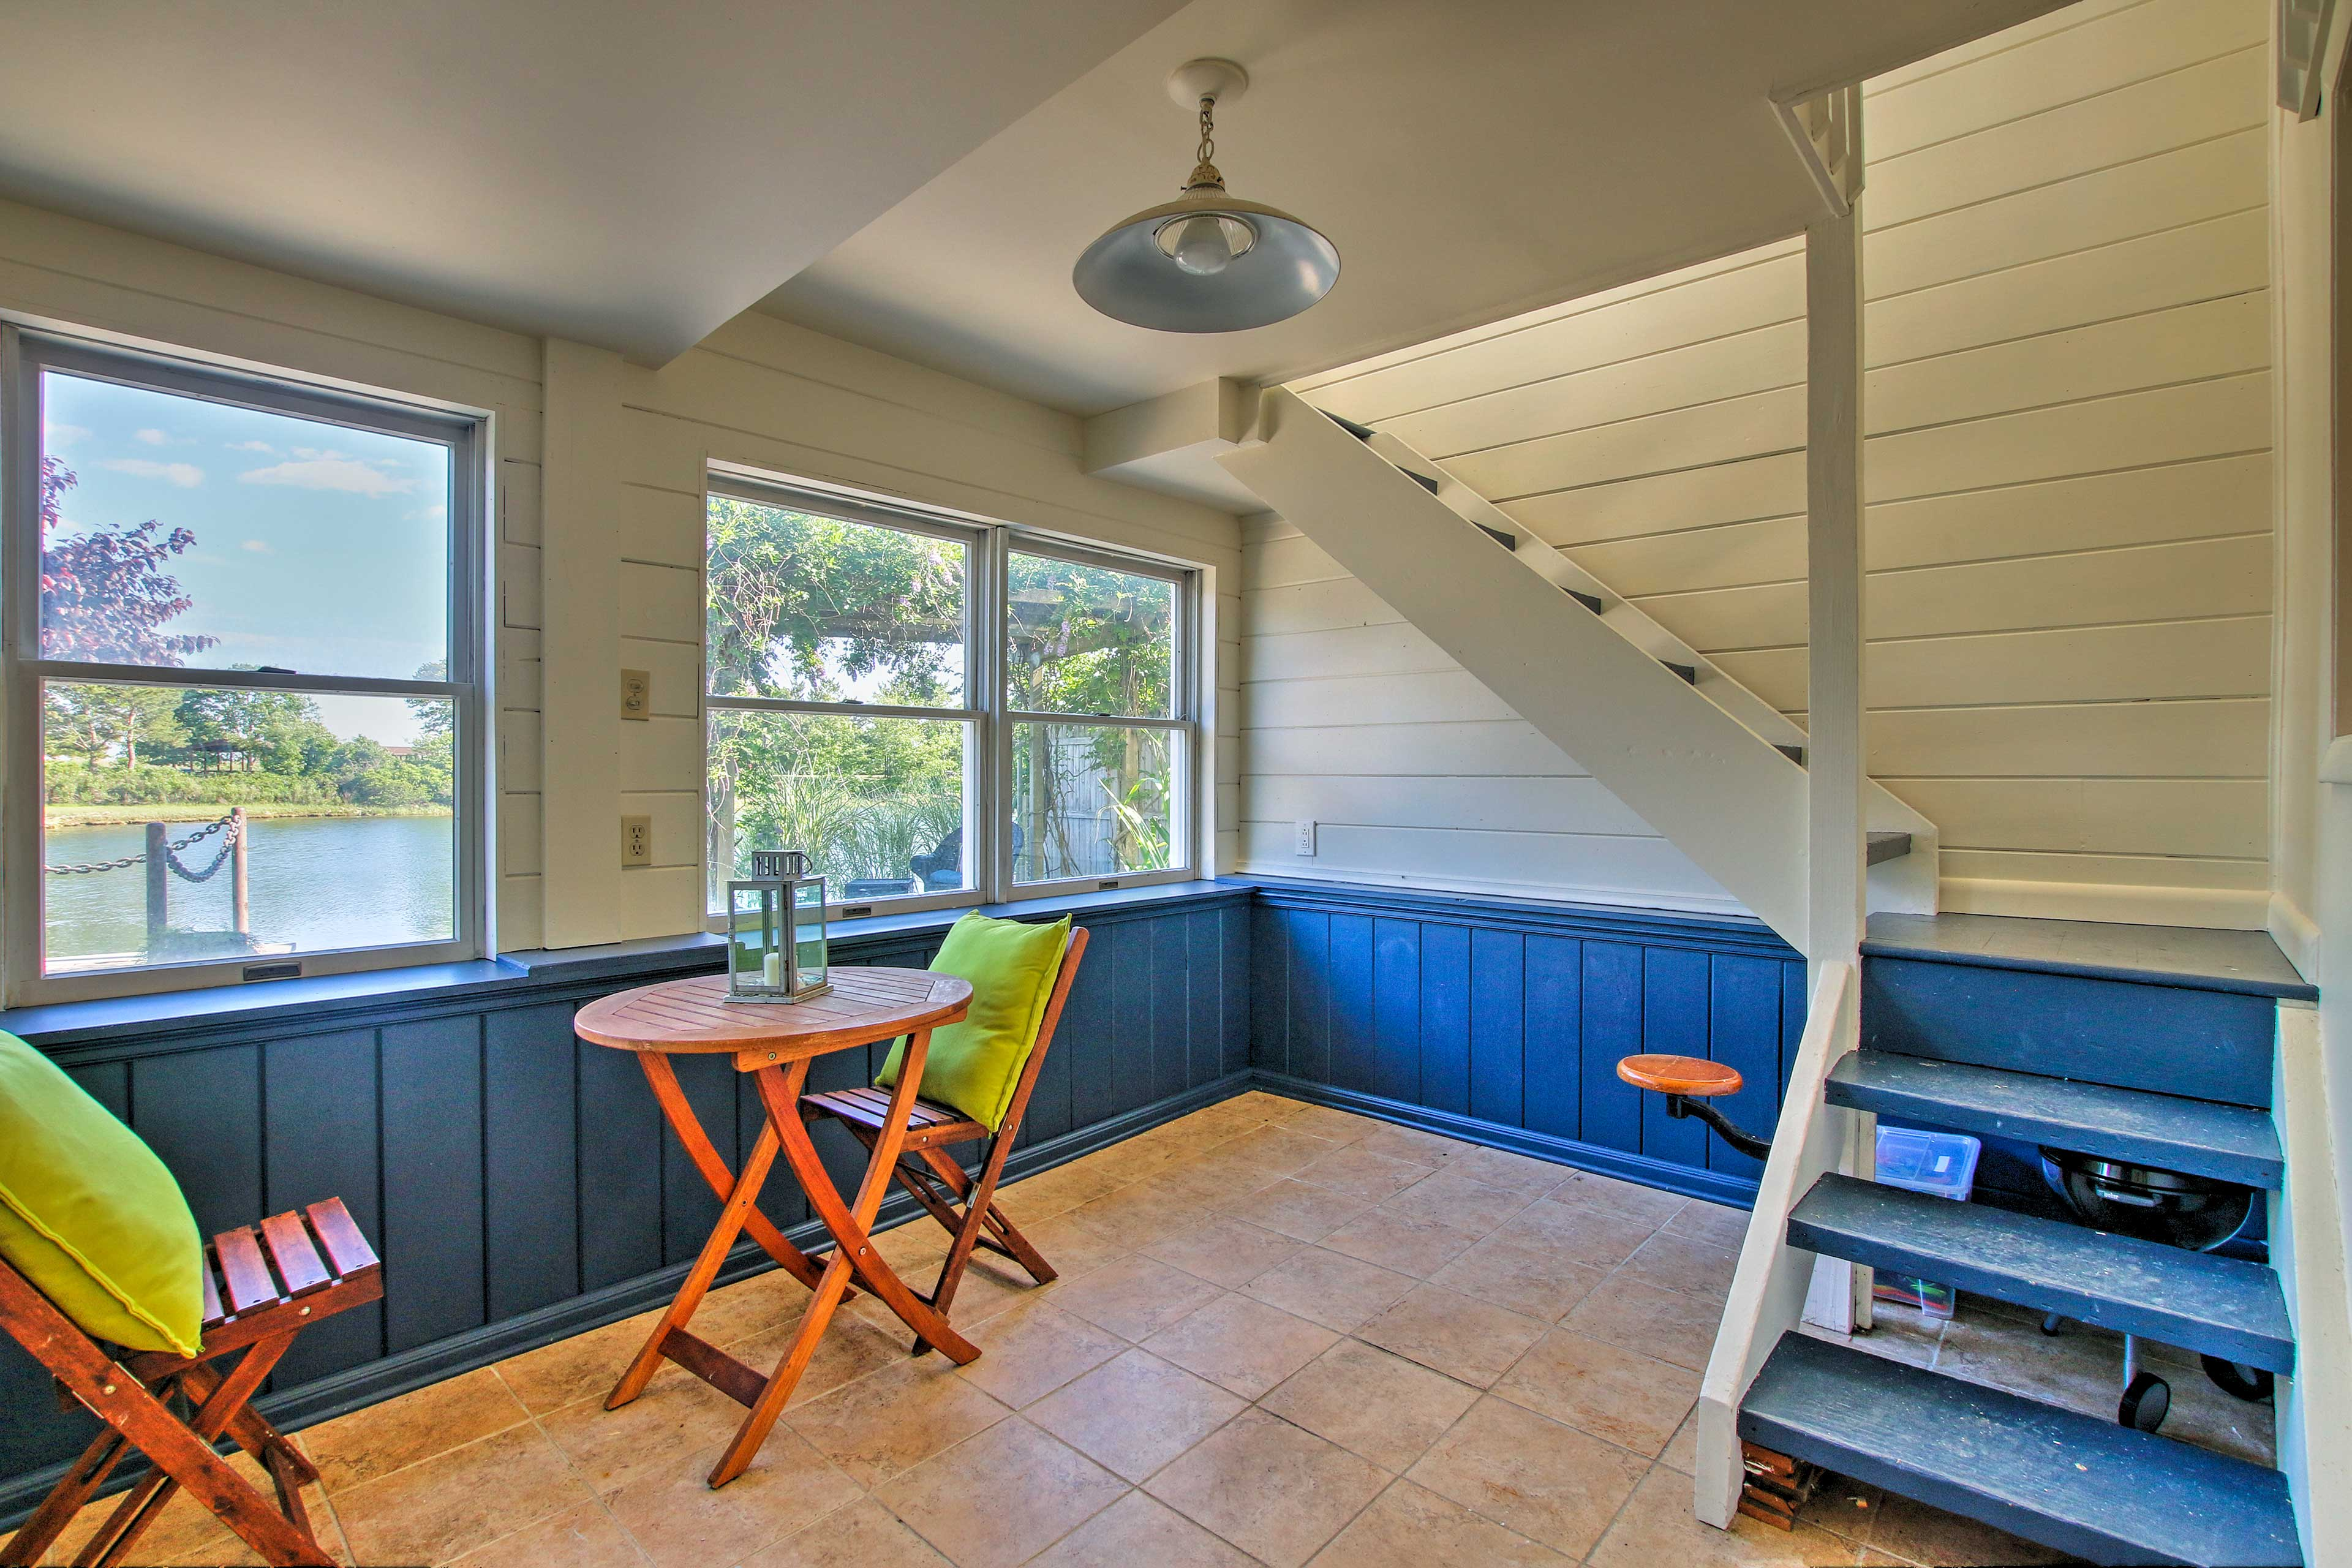 The lower level also includes a charming hangout room.